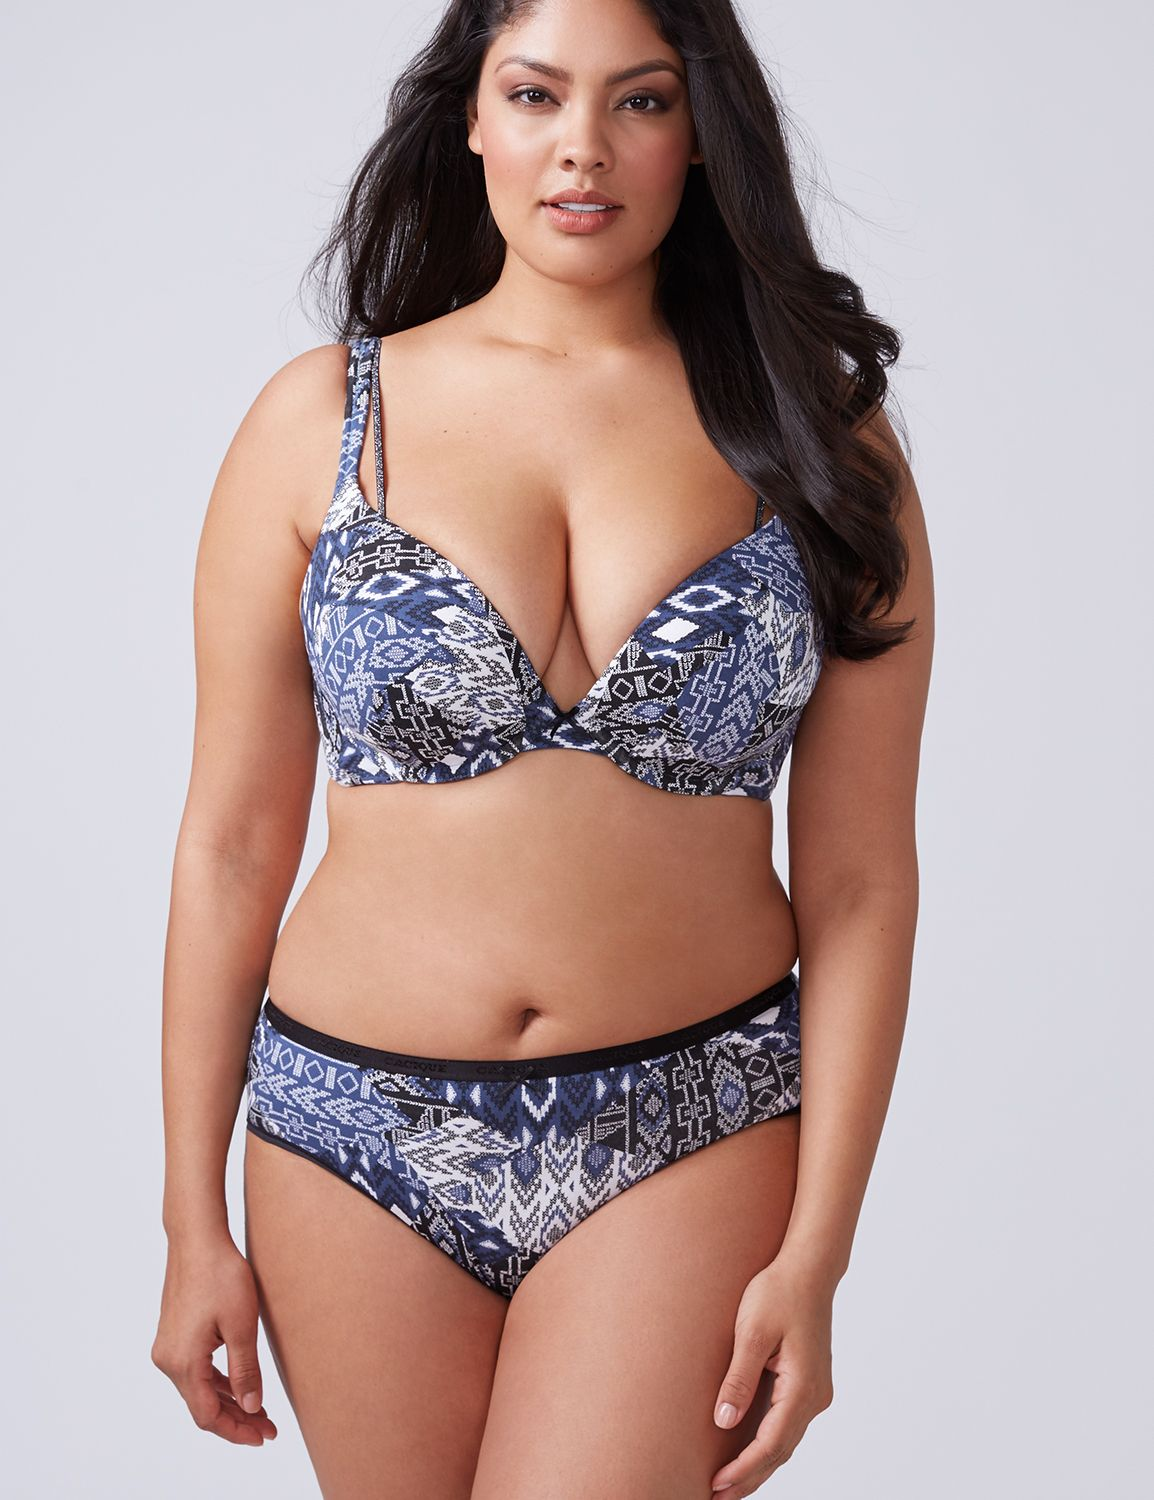 buy 5 cacique panties for $35 | plus size panties | lane bryant